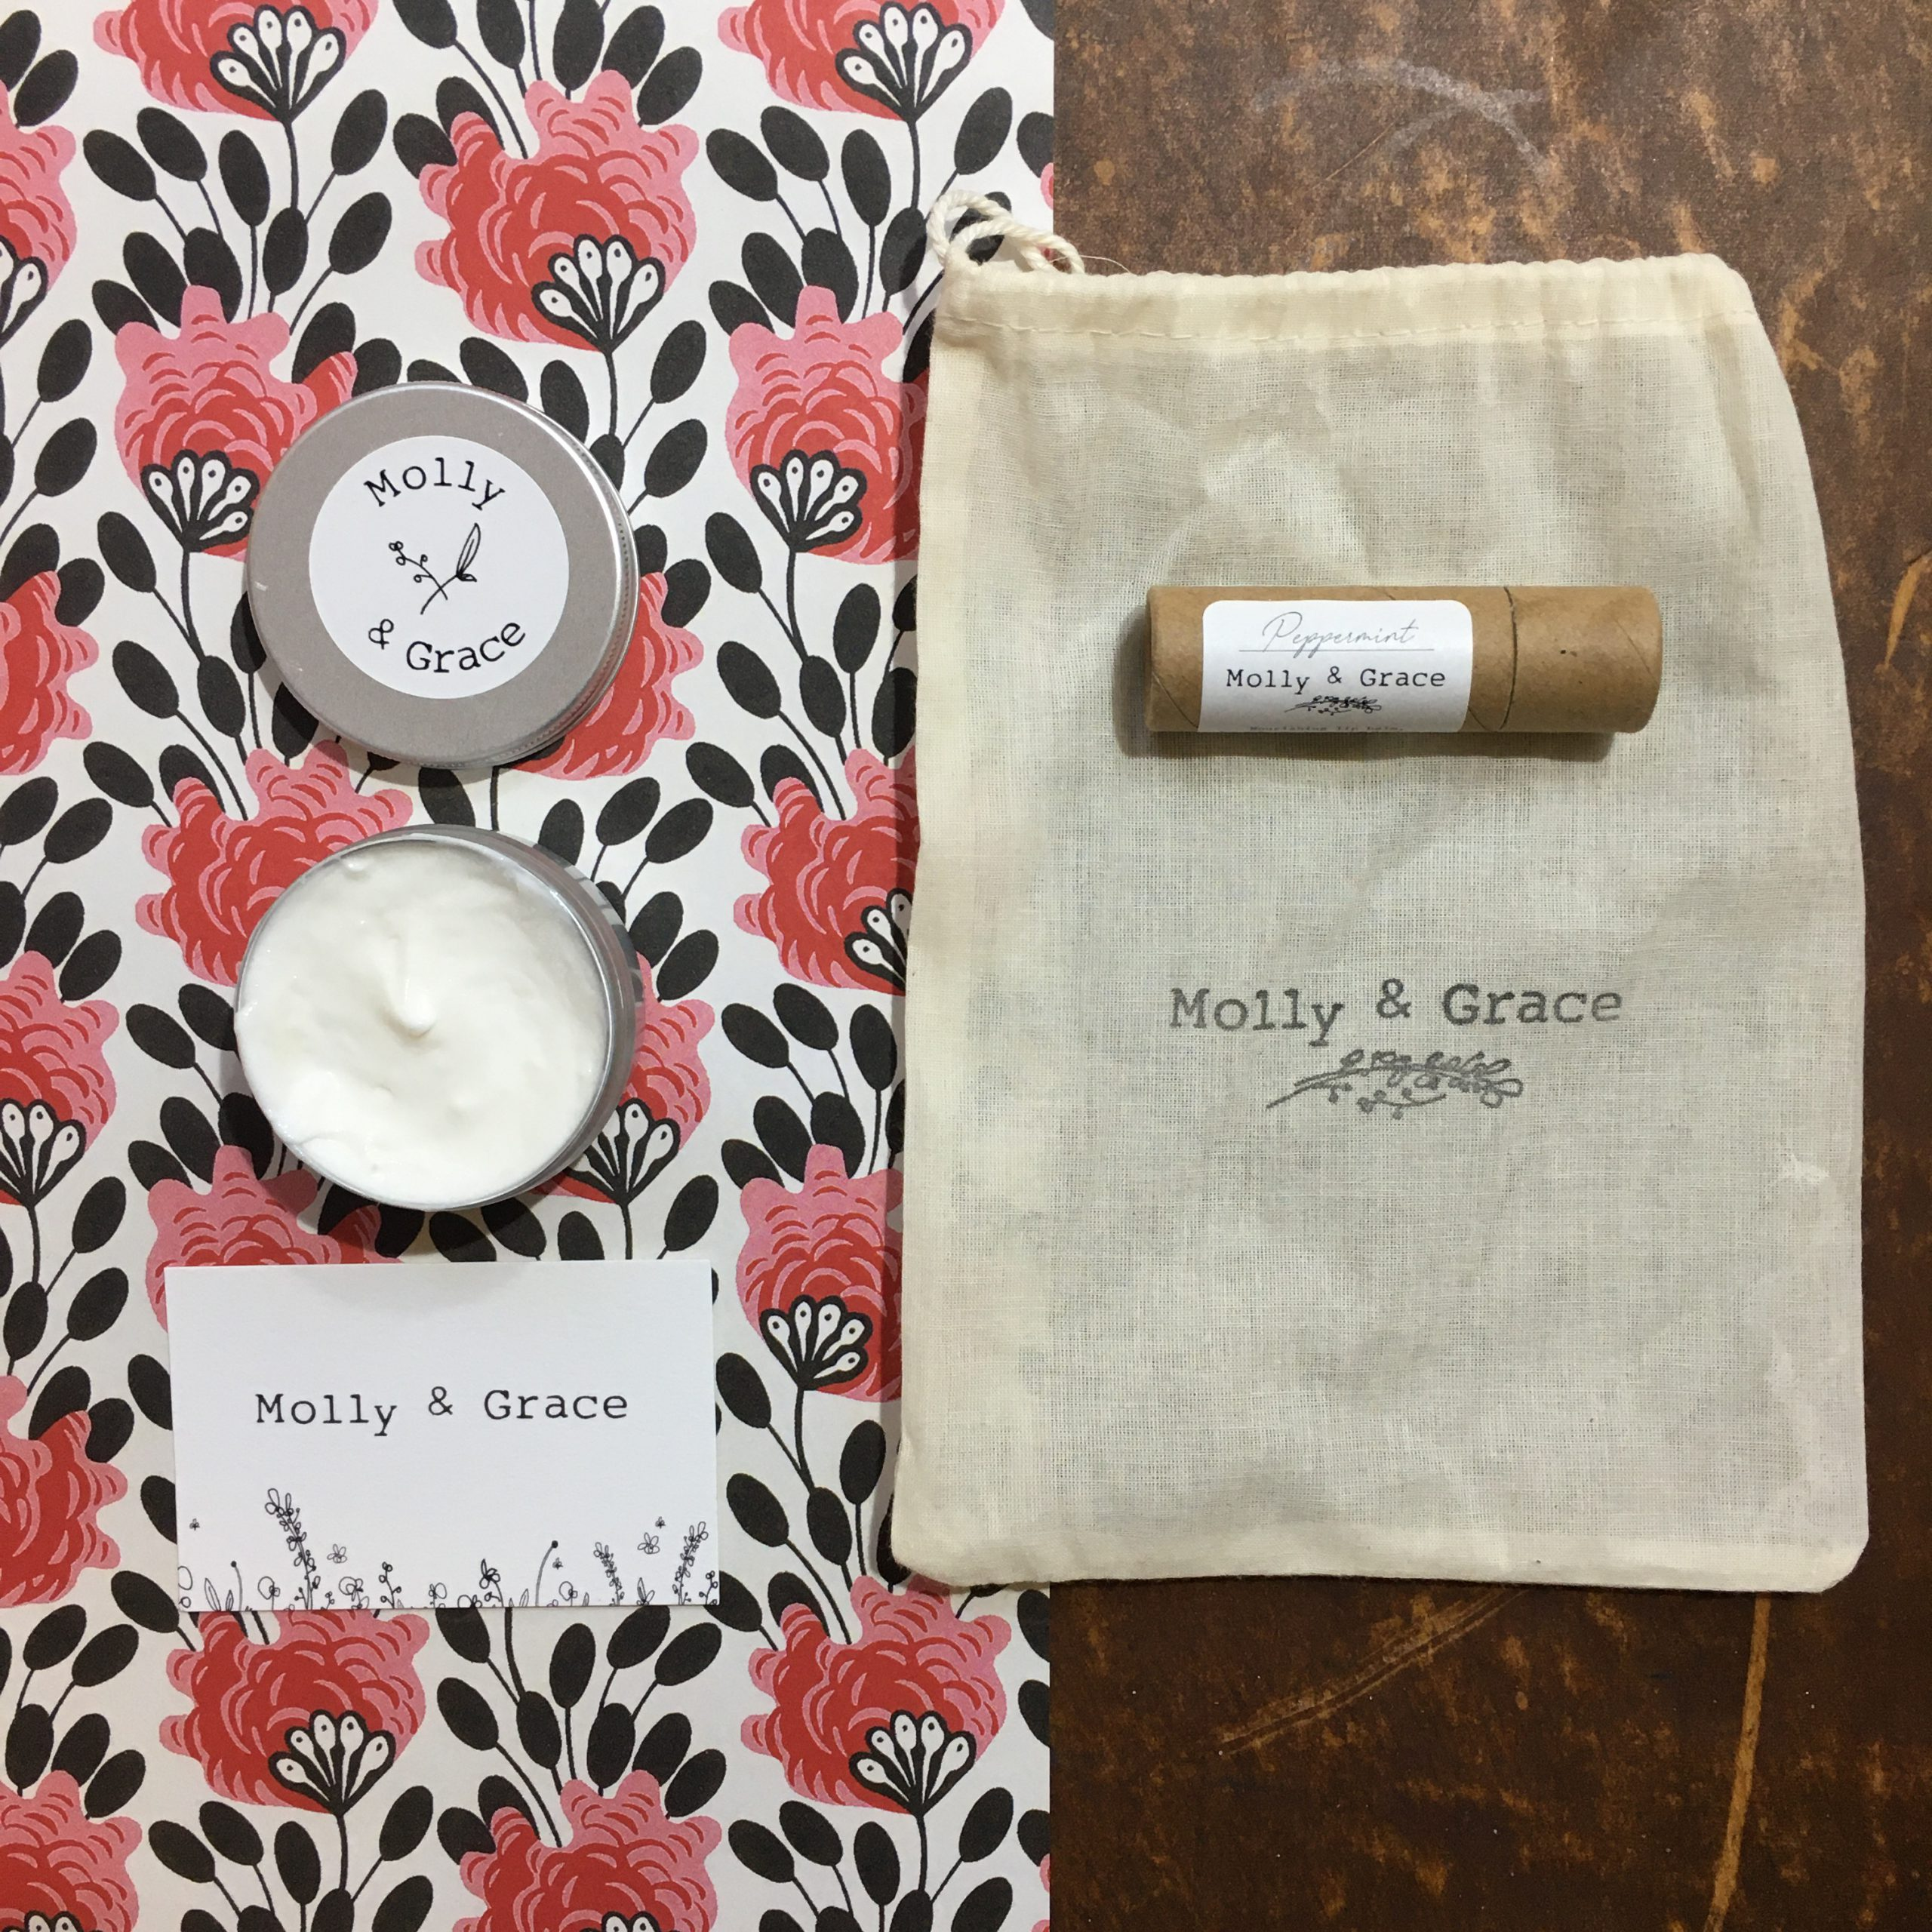 molly and grace products